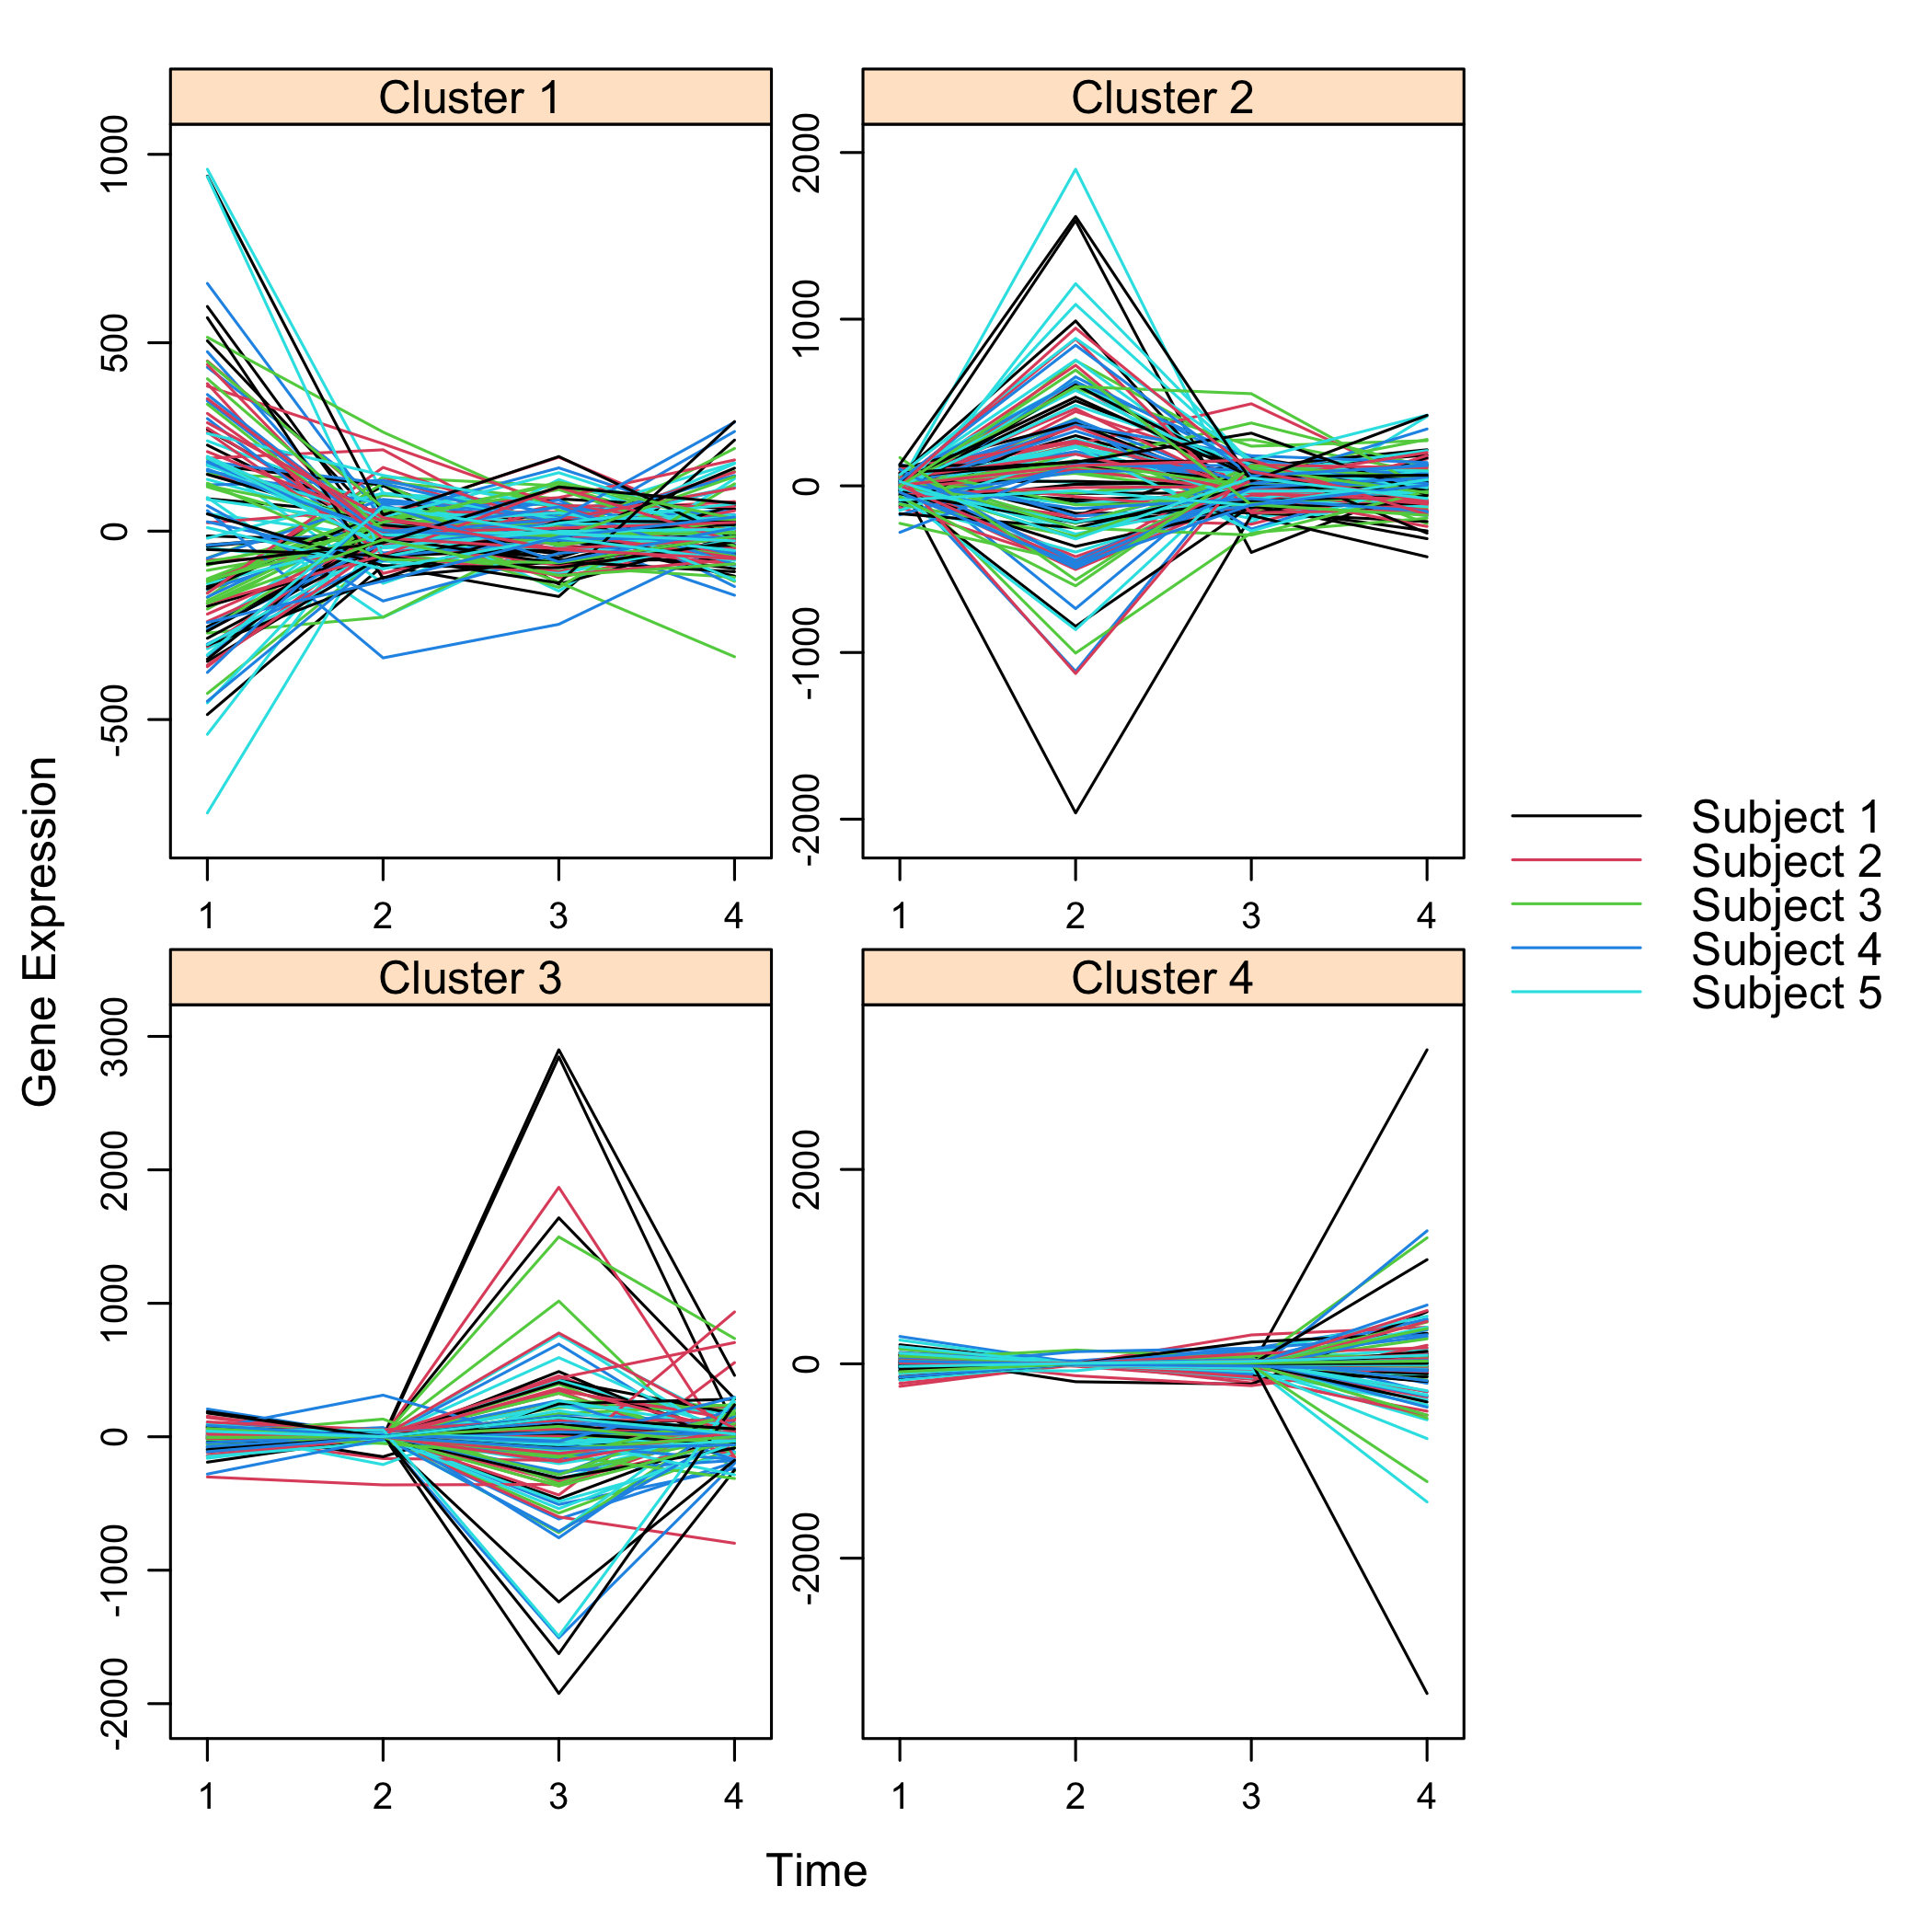 Plot of simulated data for cascade networks featuring subject membership.